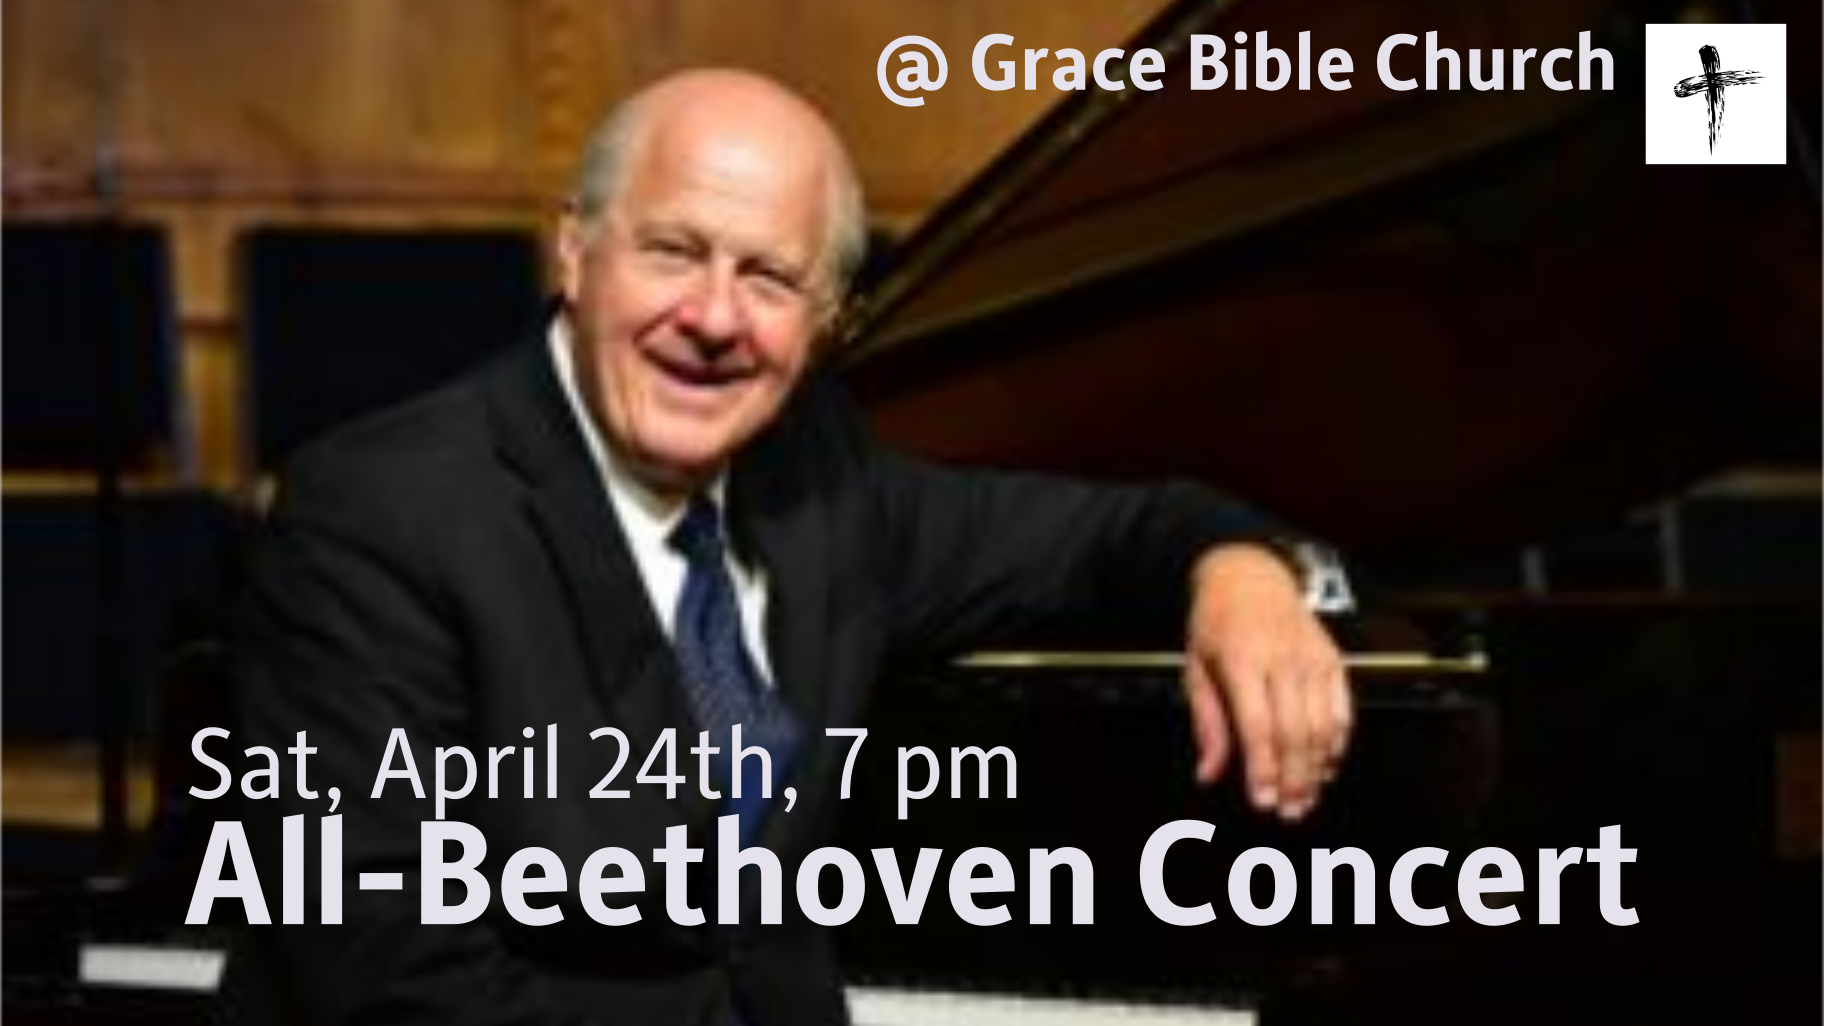 All-Beethoven Concert